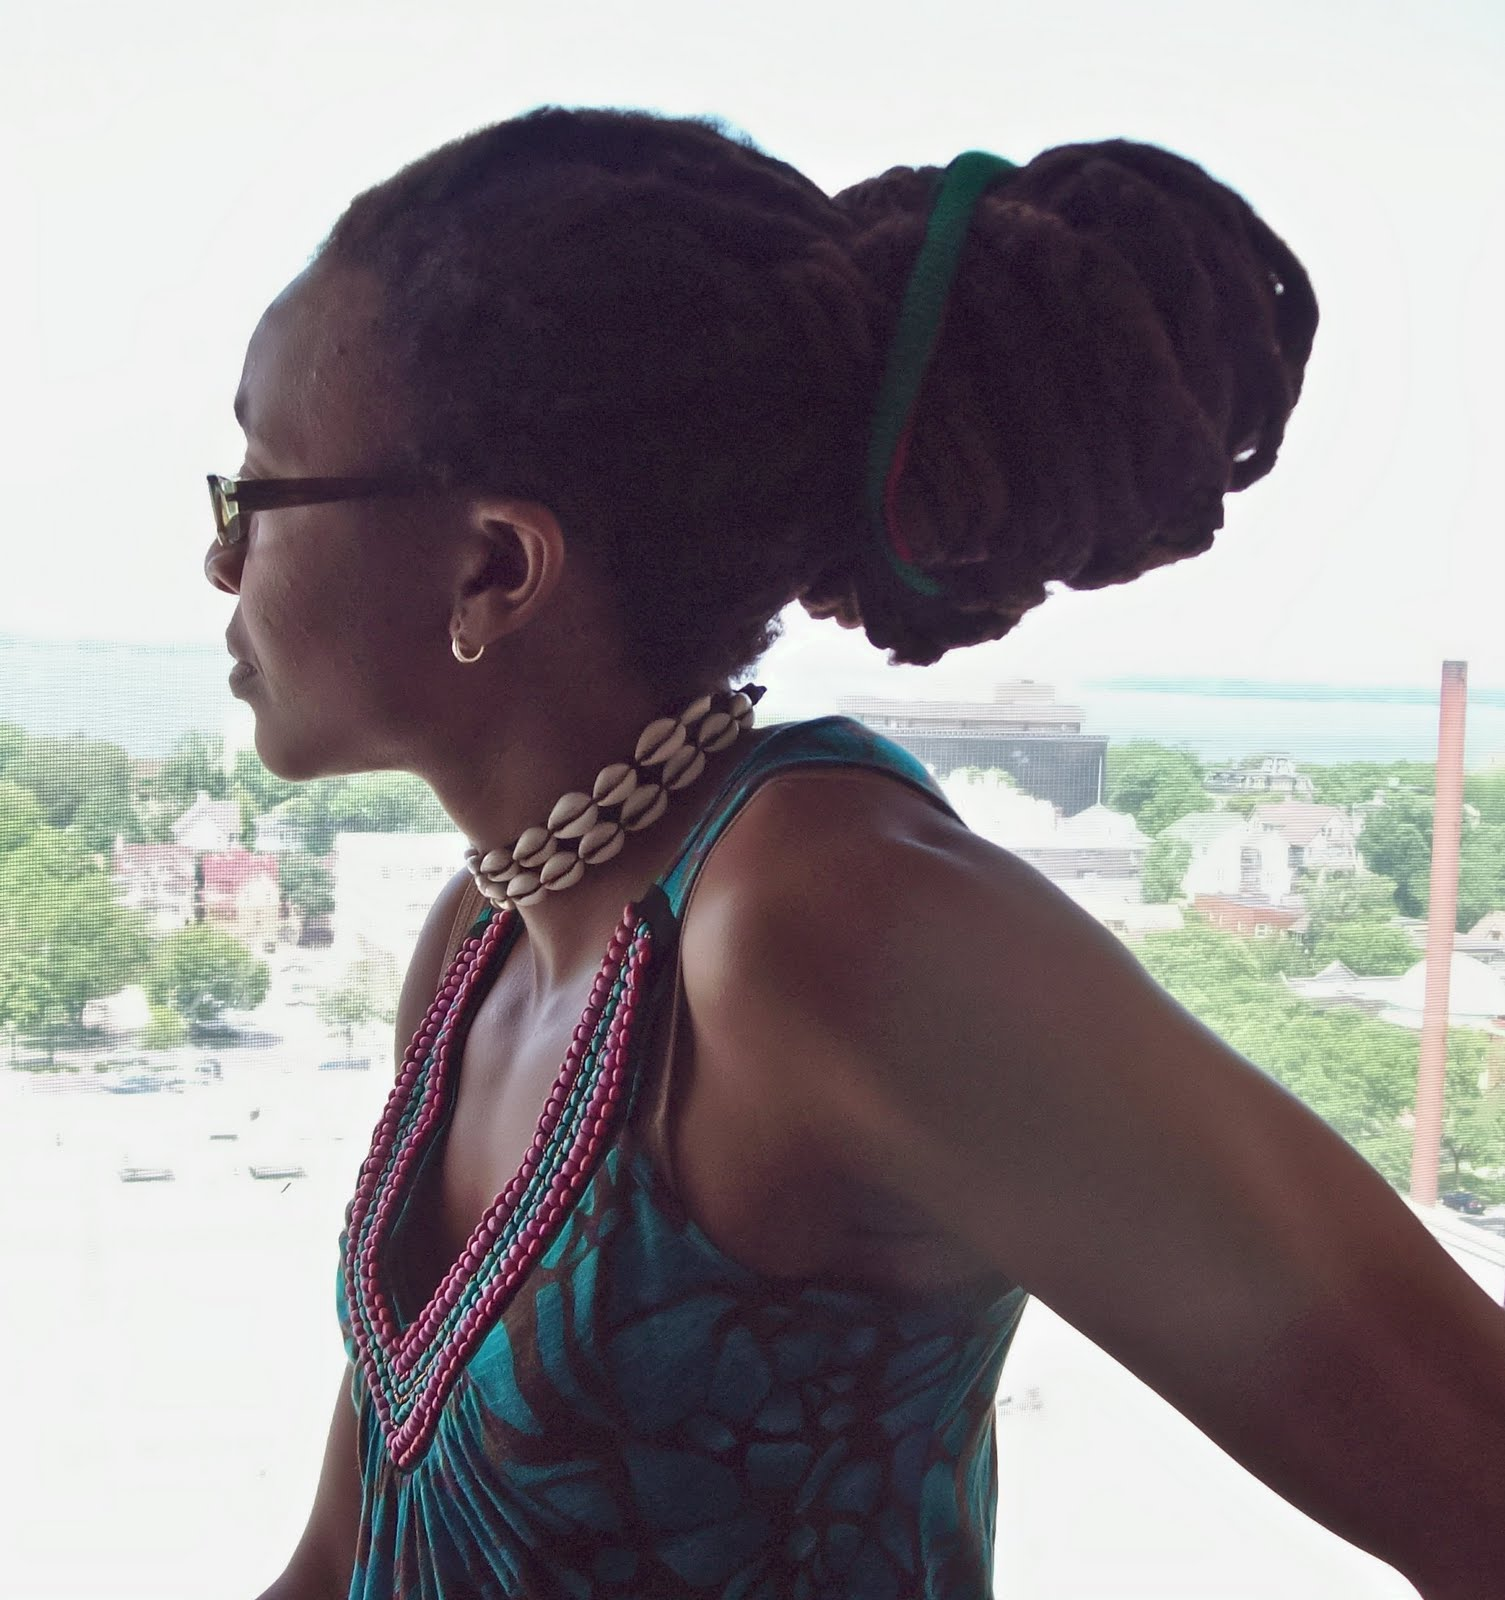 Interview with Speculative Fiction Writer Nnedi Okorafor